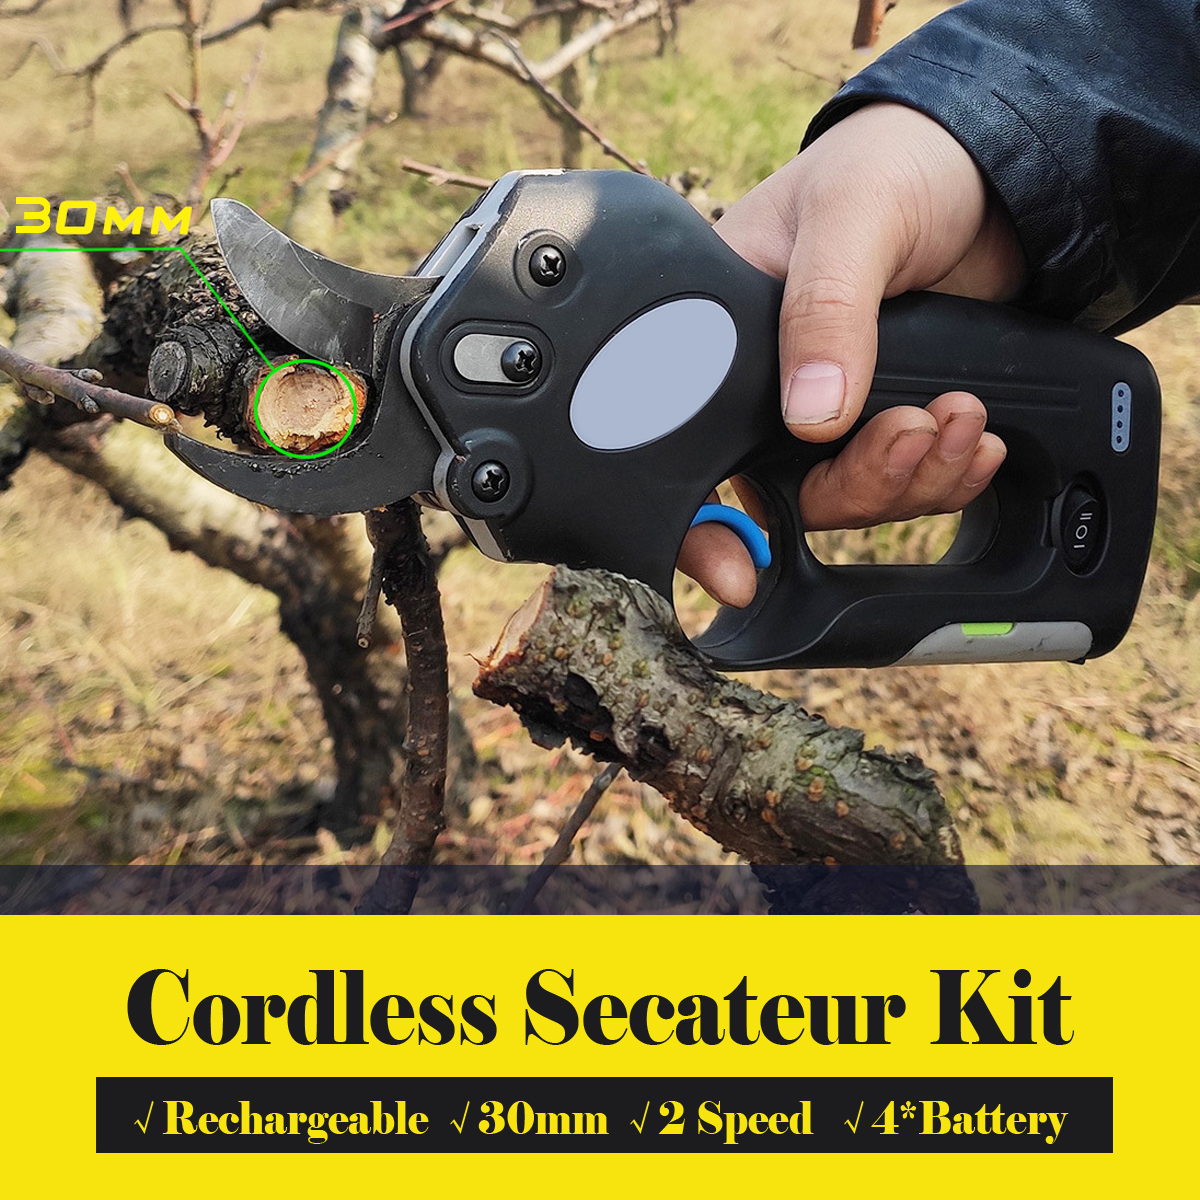 12V Wireless Cordless Electric Rechargeable Scissors Pruning Shears Tree Garden Tool Branches Pruning Tools W/ 4 Li-ion Battery